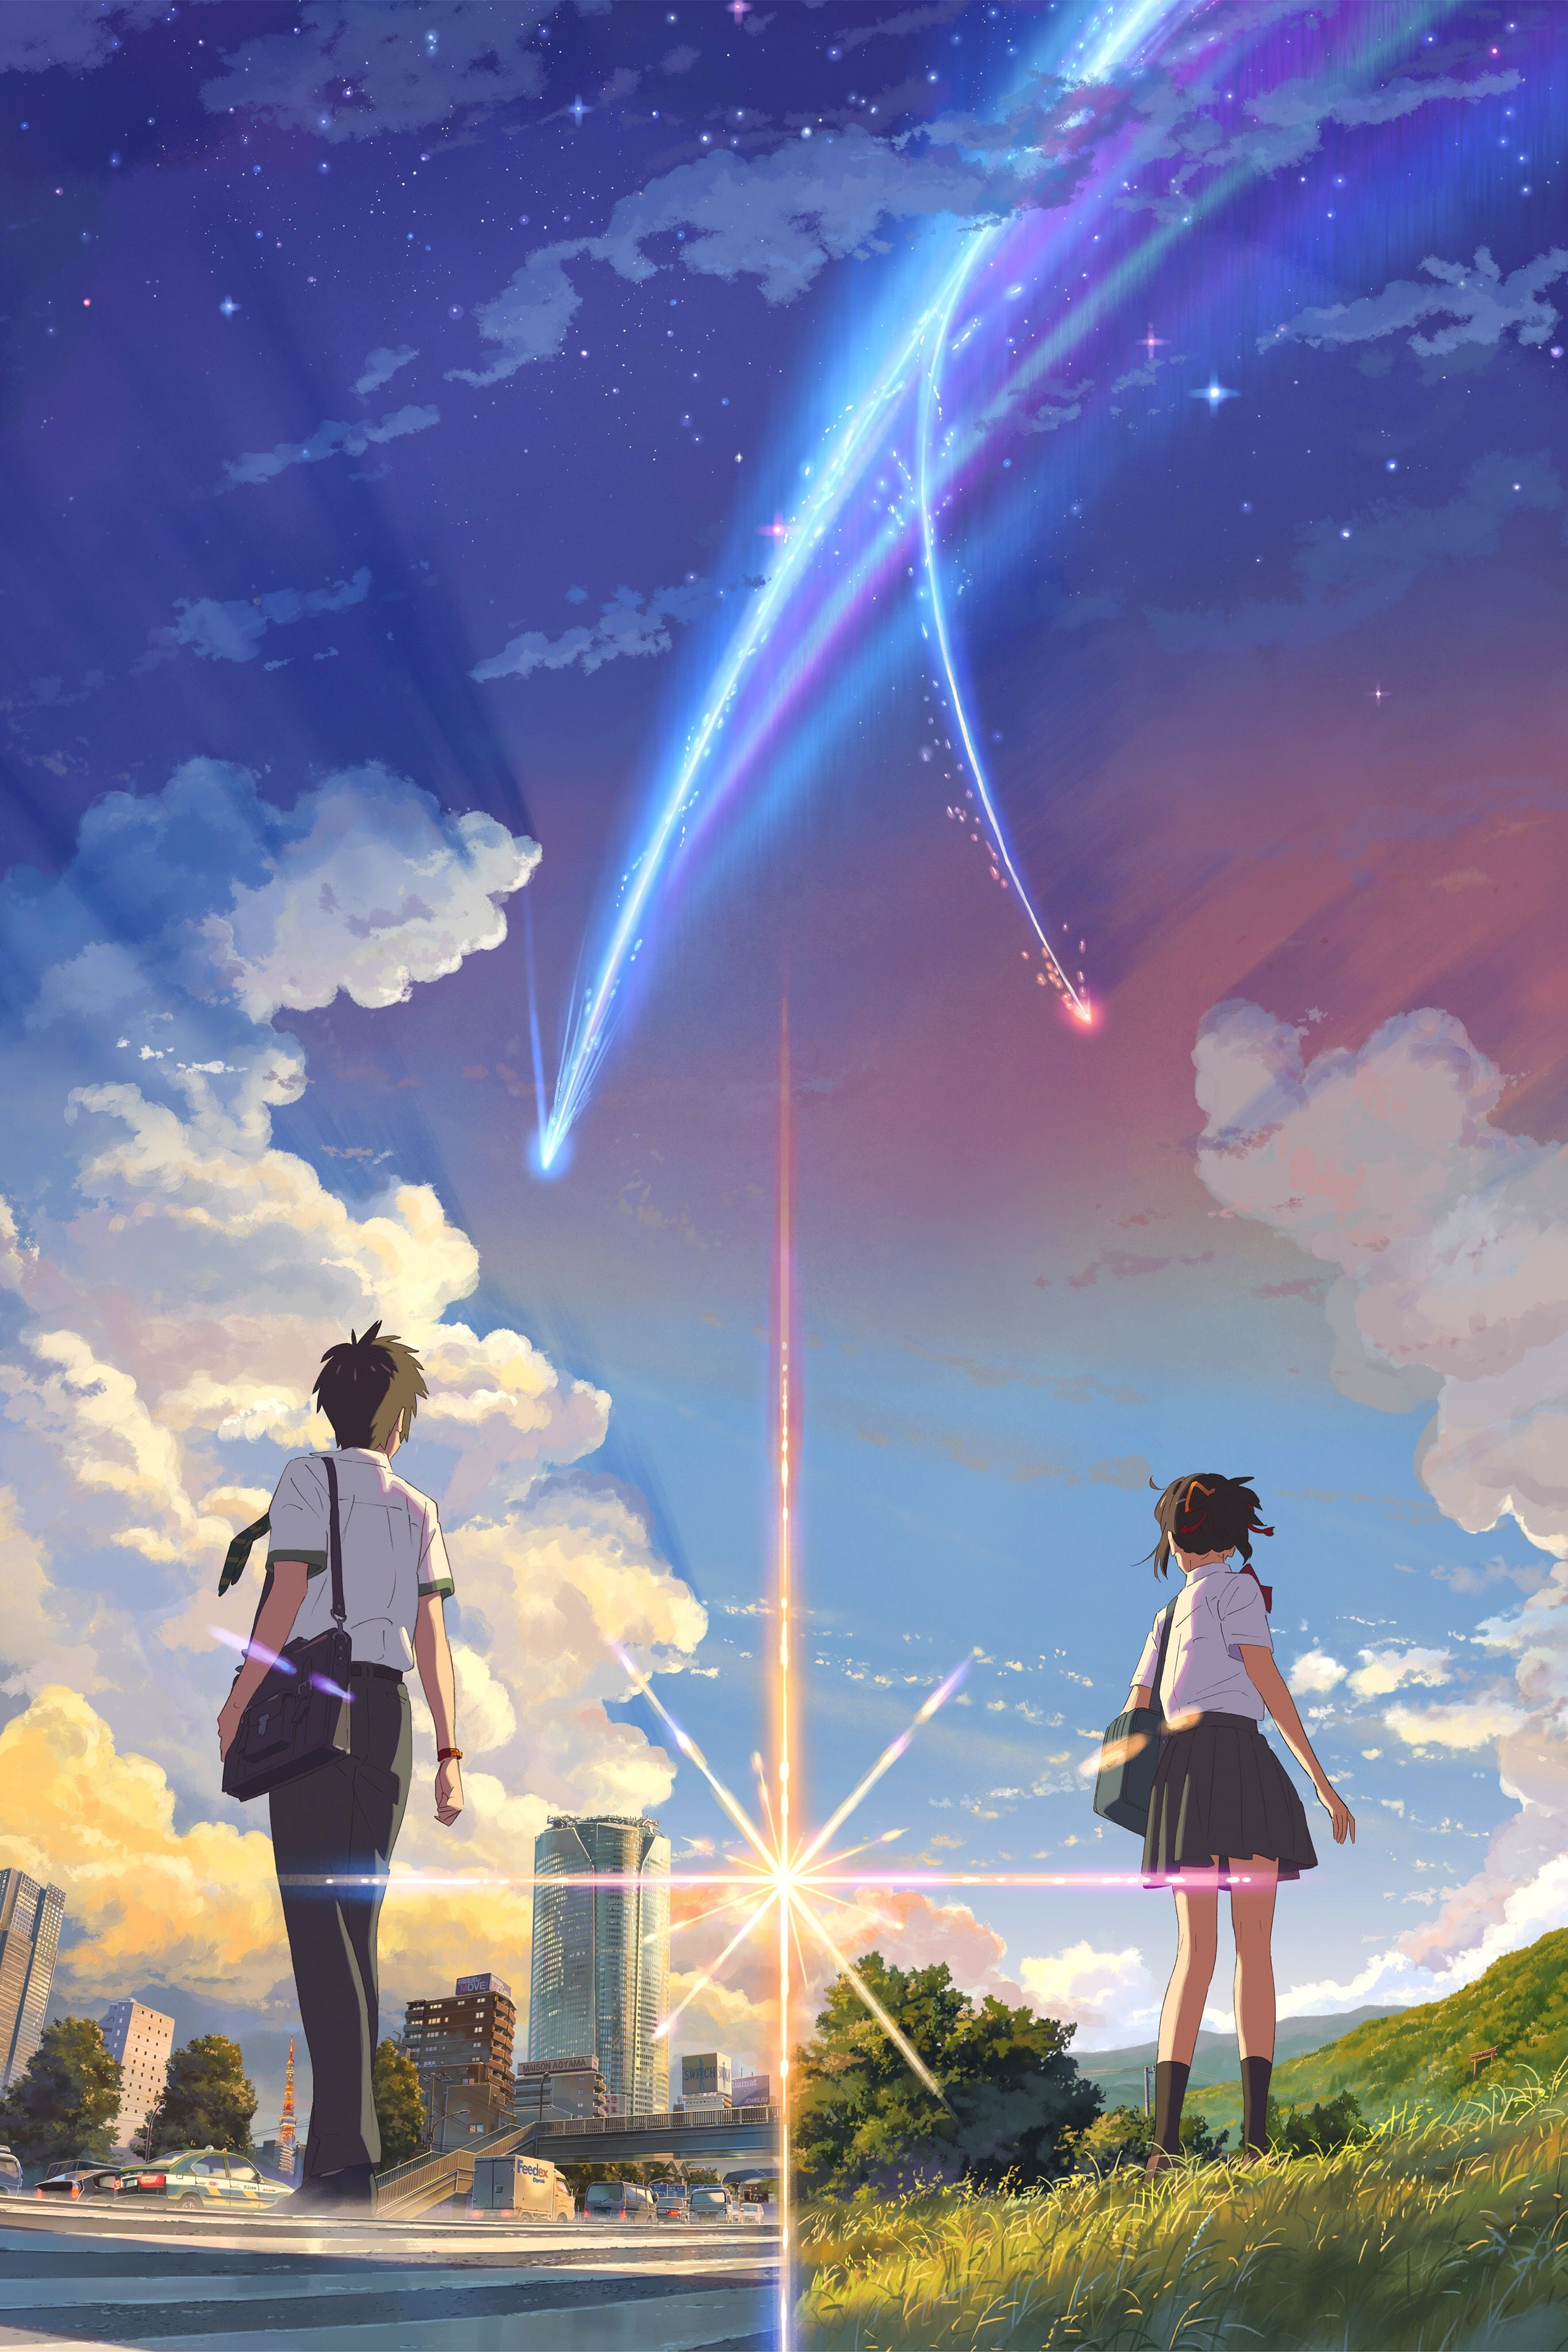 Your Name Wallpaper 4k Posted By Ethan Thompson